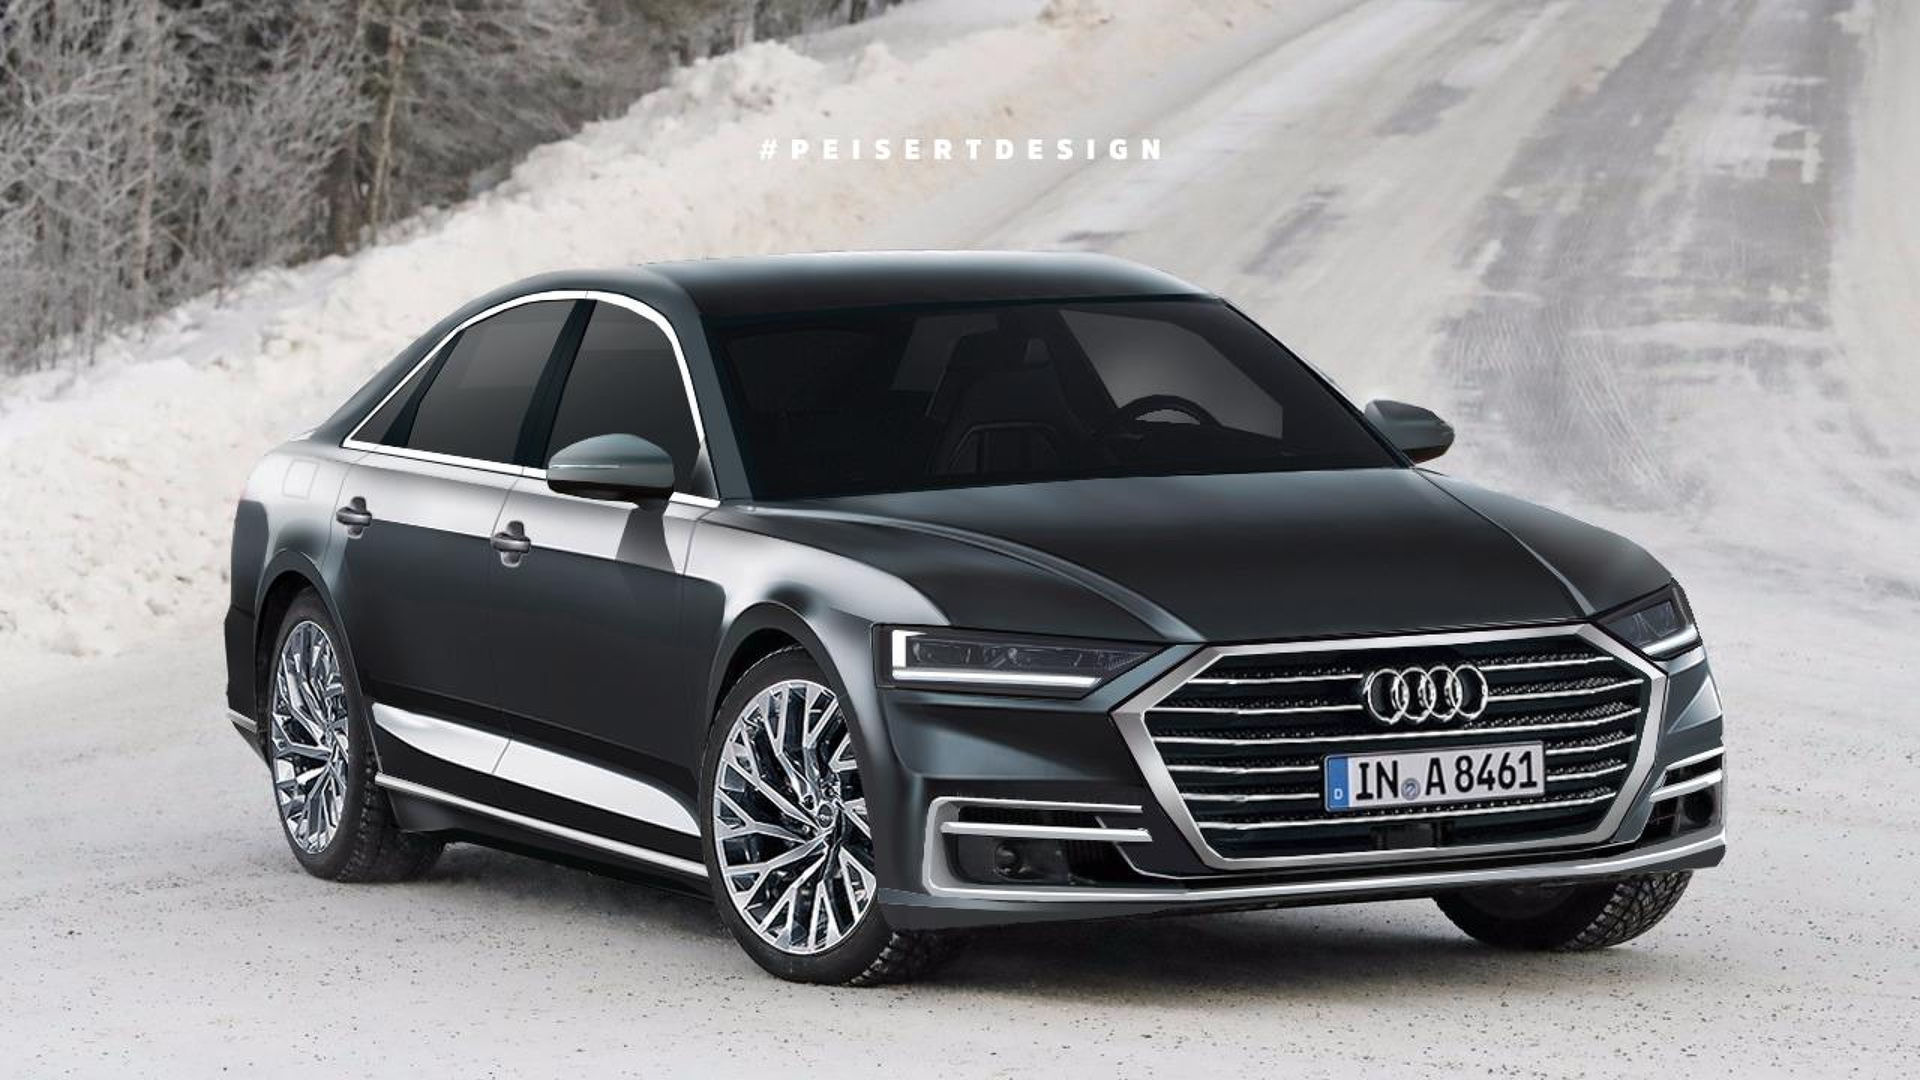 2018 audi a8 rendering previews a sharp looking luxury sedan. Black Bedroom Furniture Sets. Home Design Ideas